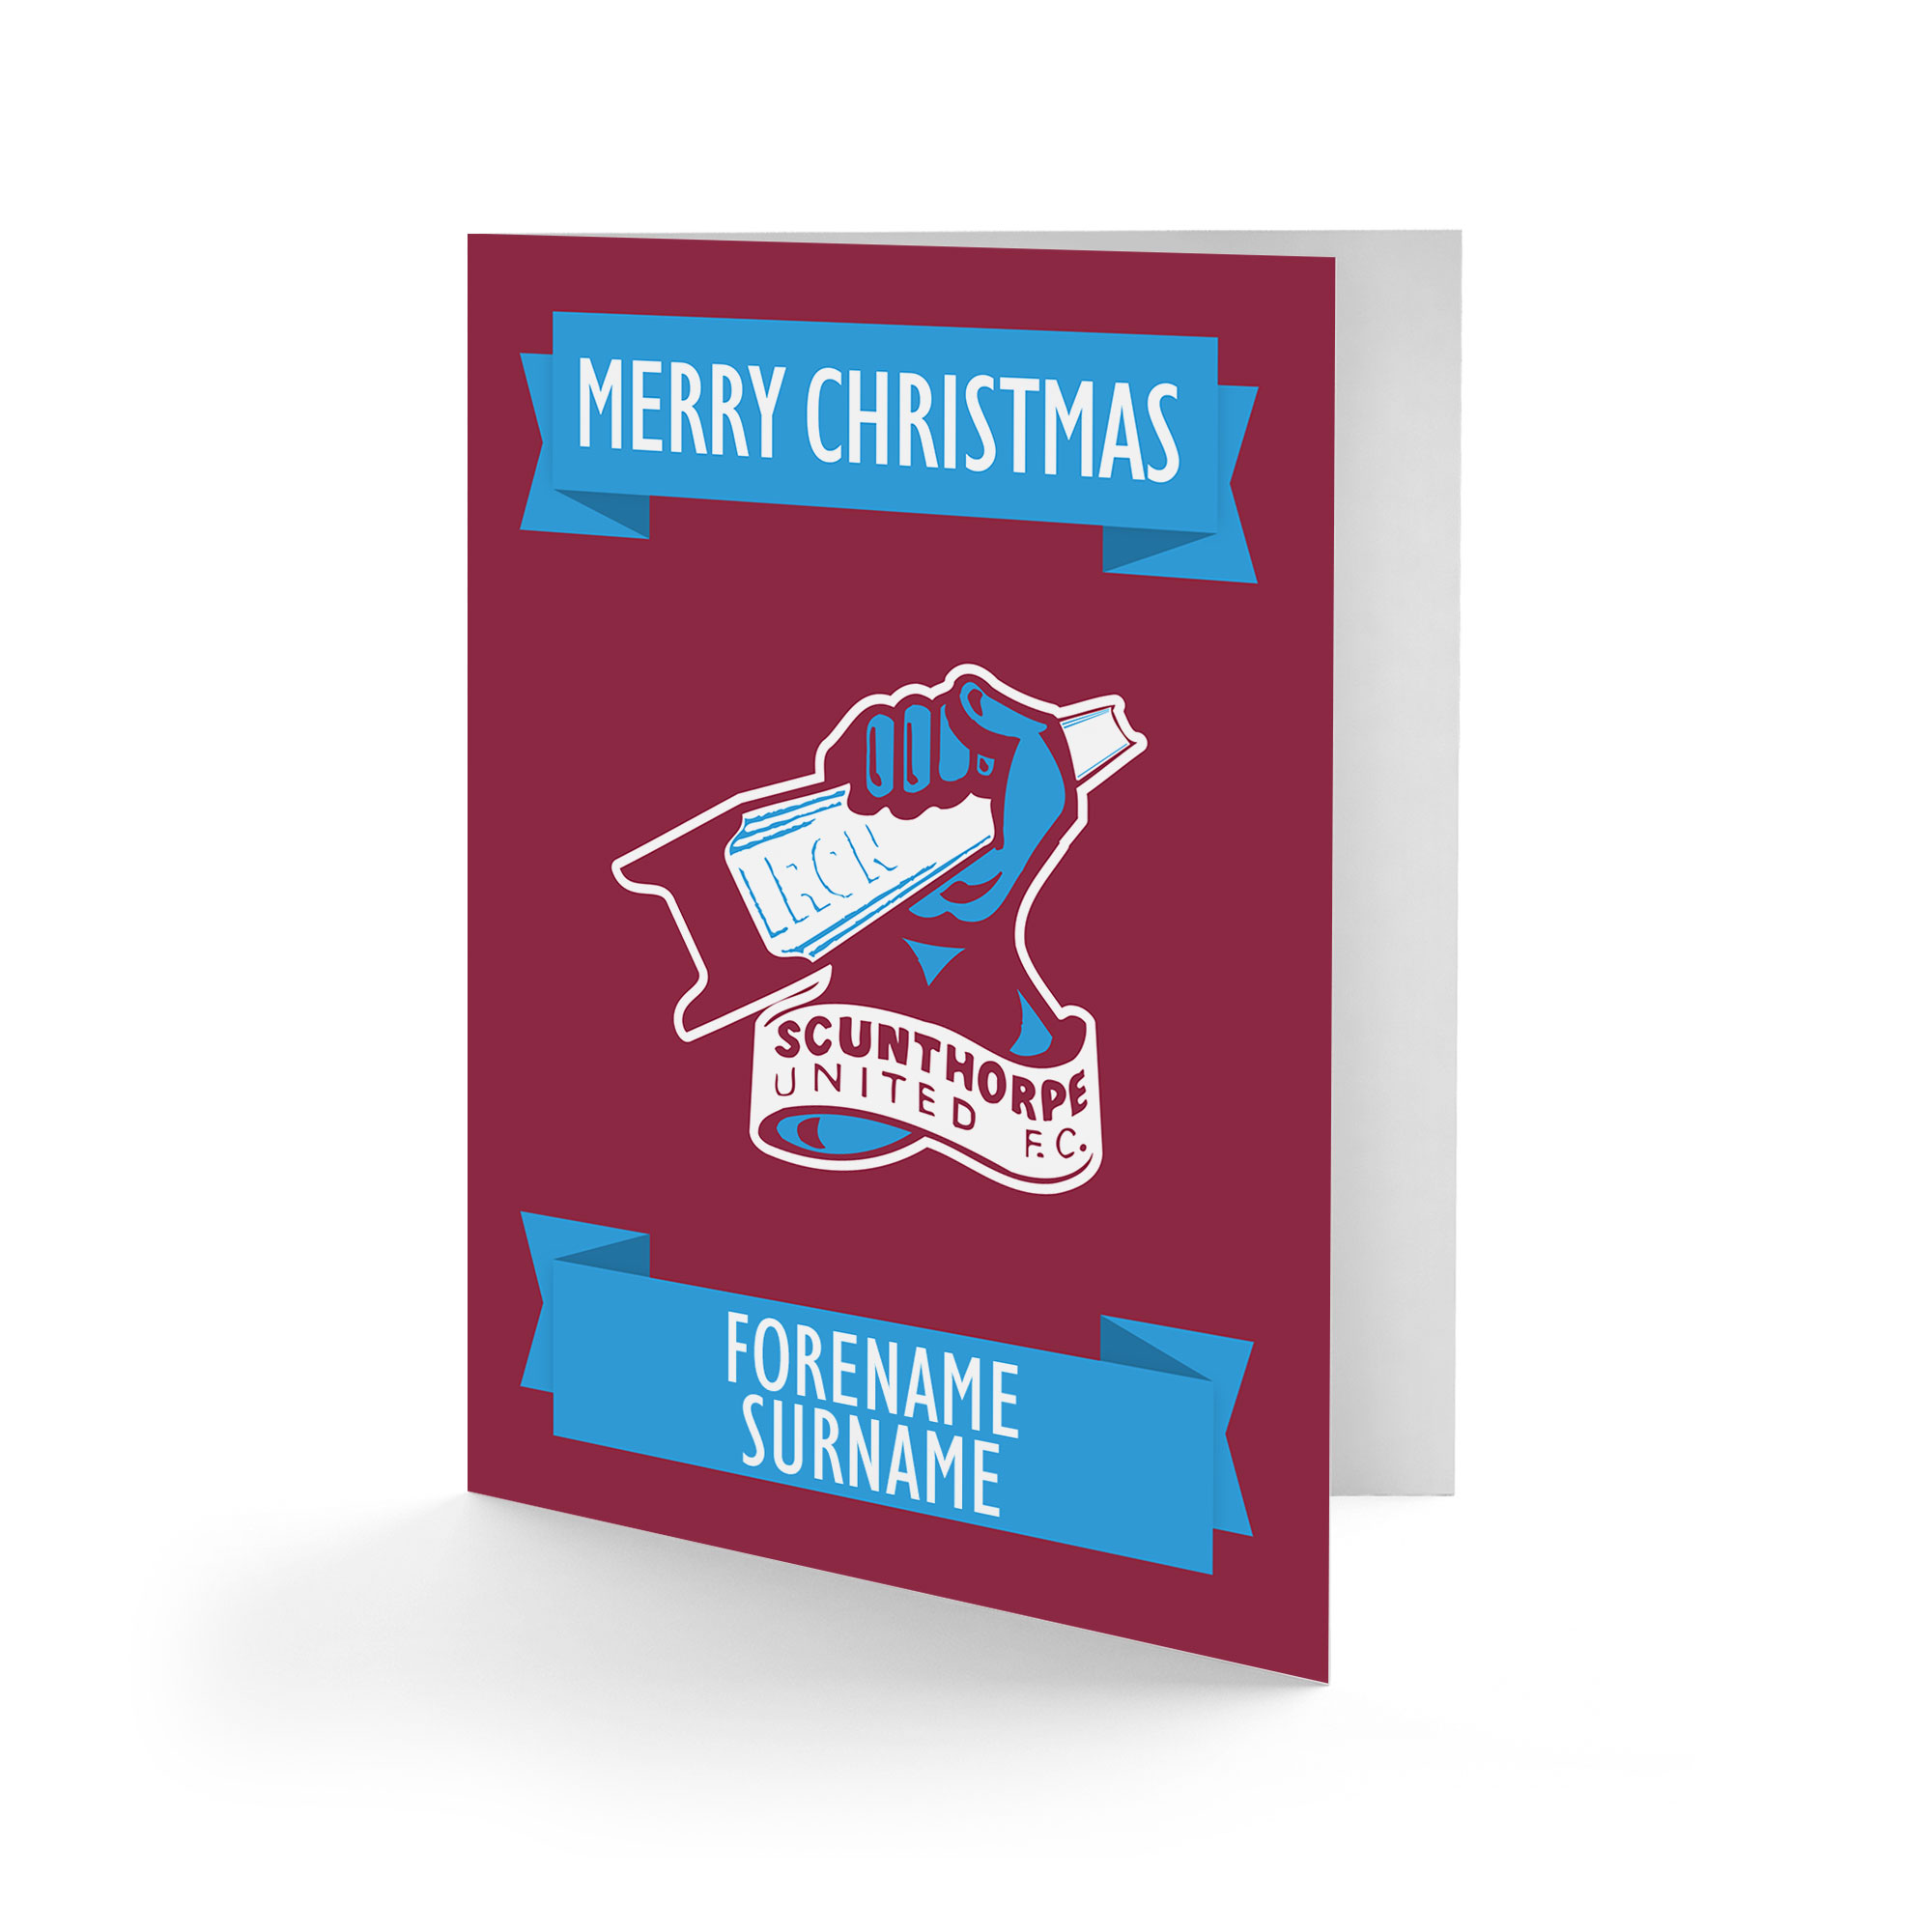 Scunthorpe United FC Crest Christmas Card